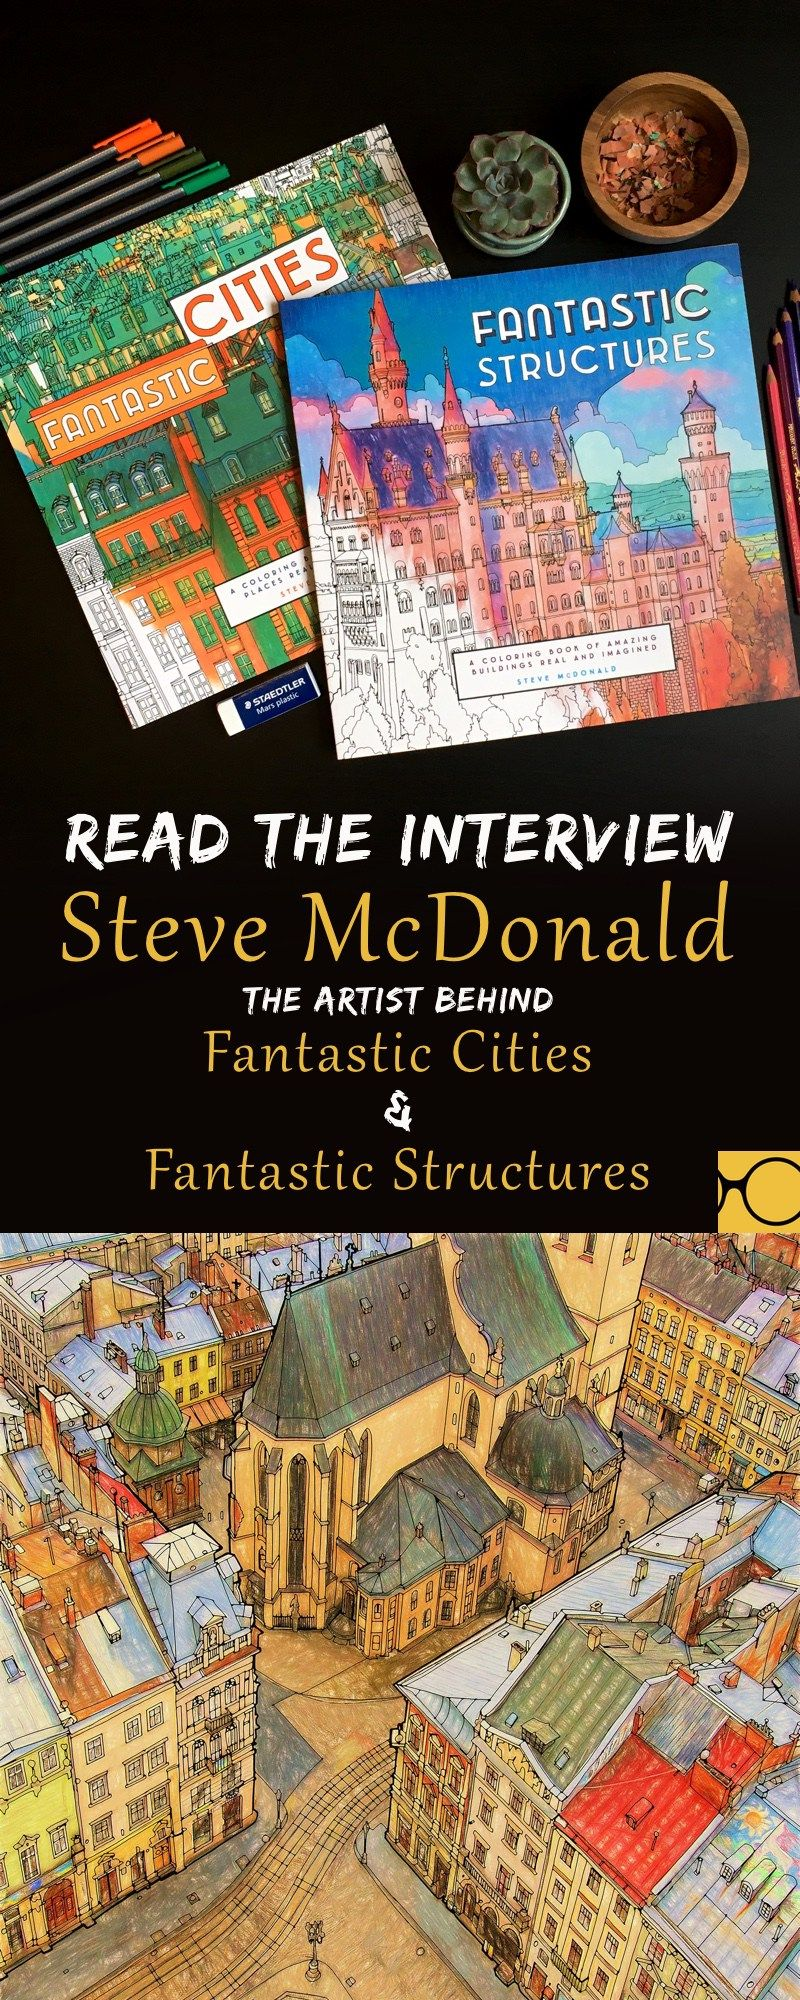 Click Here To Read An Interview With Steve McDonald The Talented Artist Behind Fantastic Cities And Structures Coloring Books